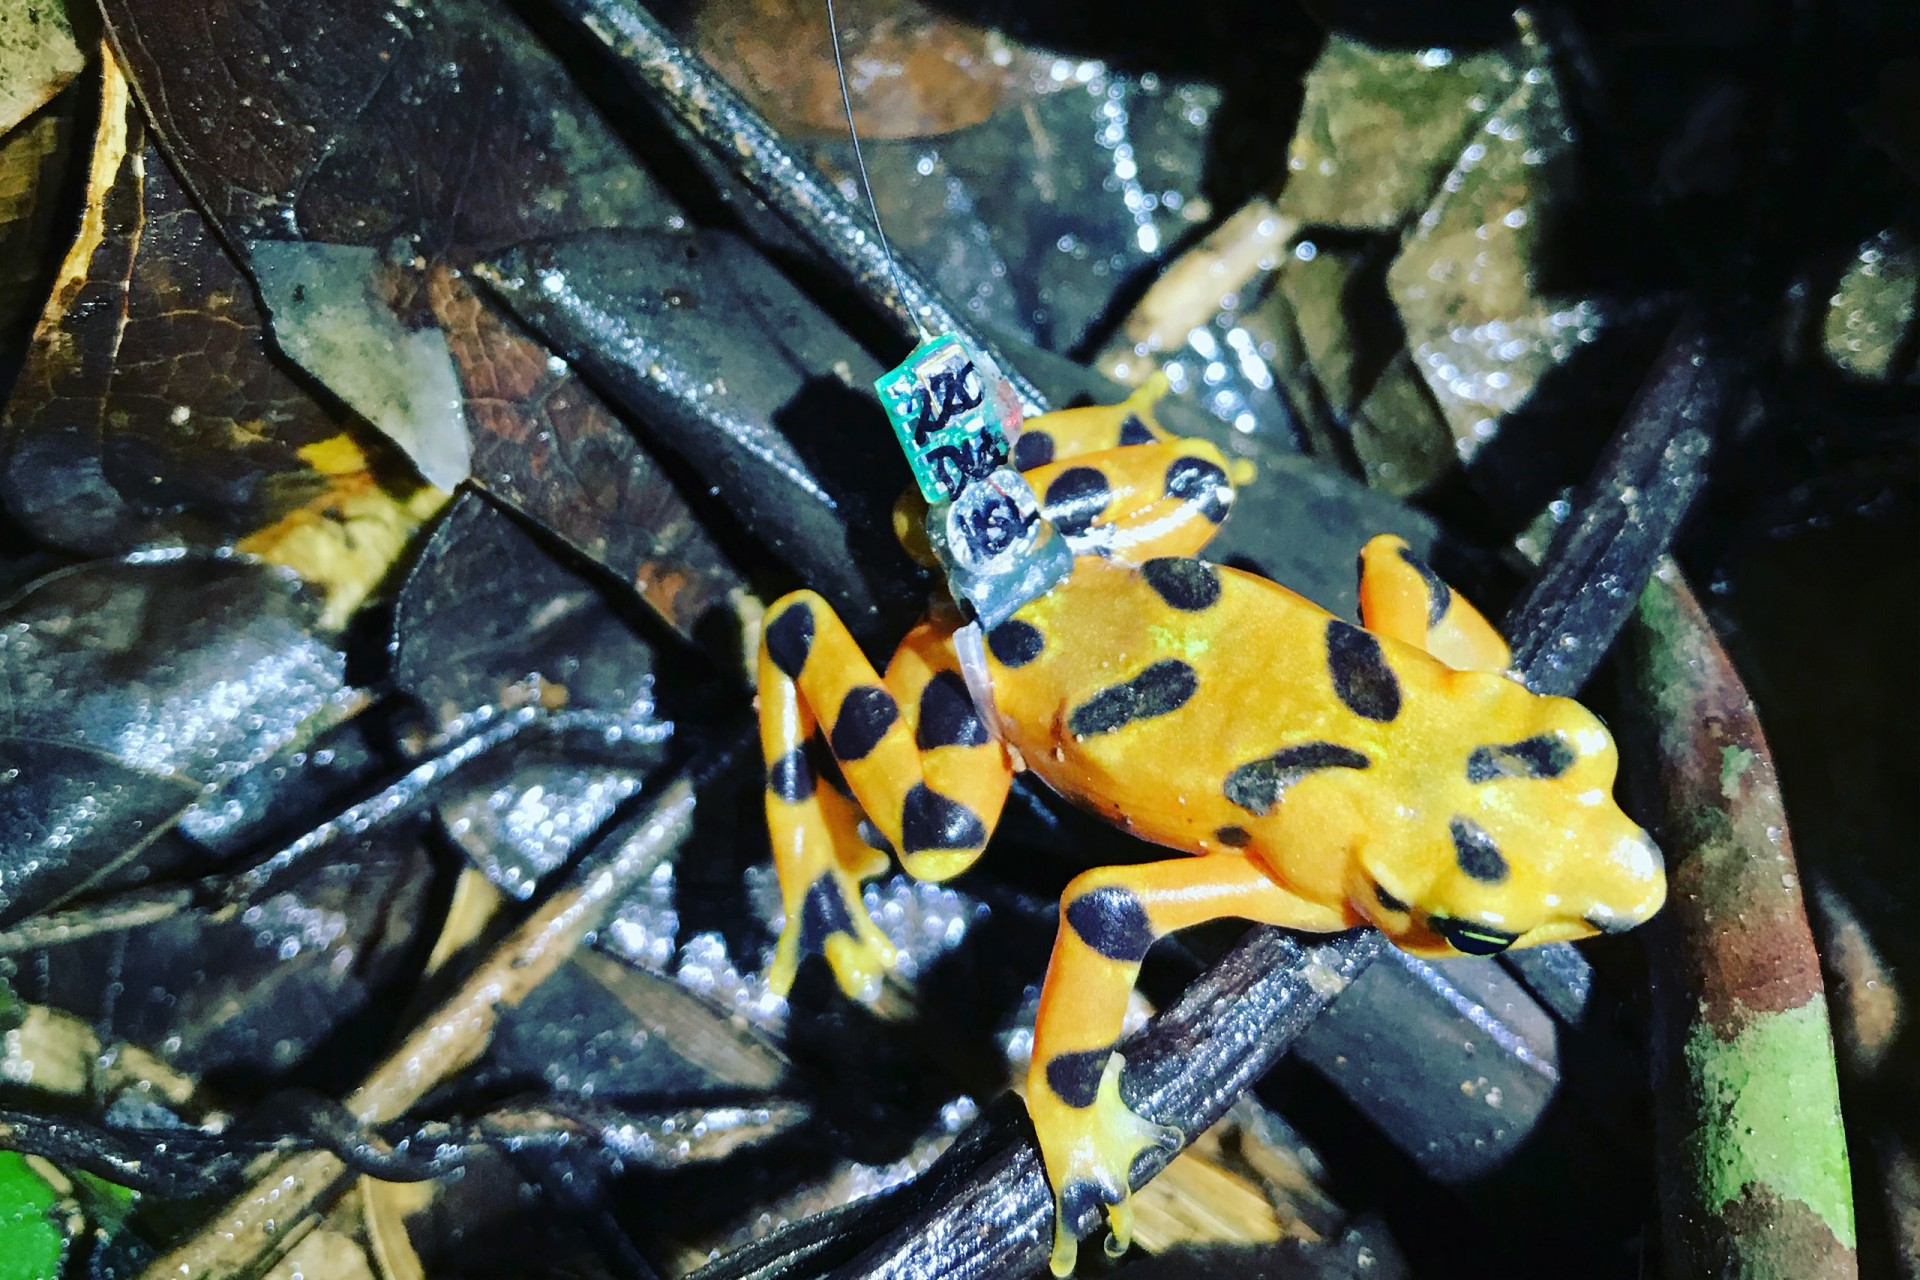 Atelopus varius carrying radio transmitter.